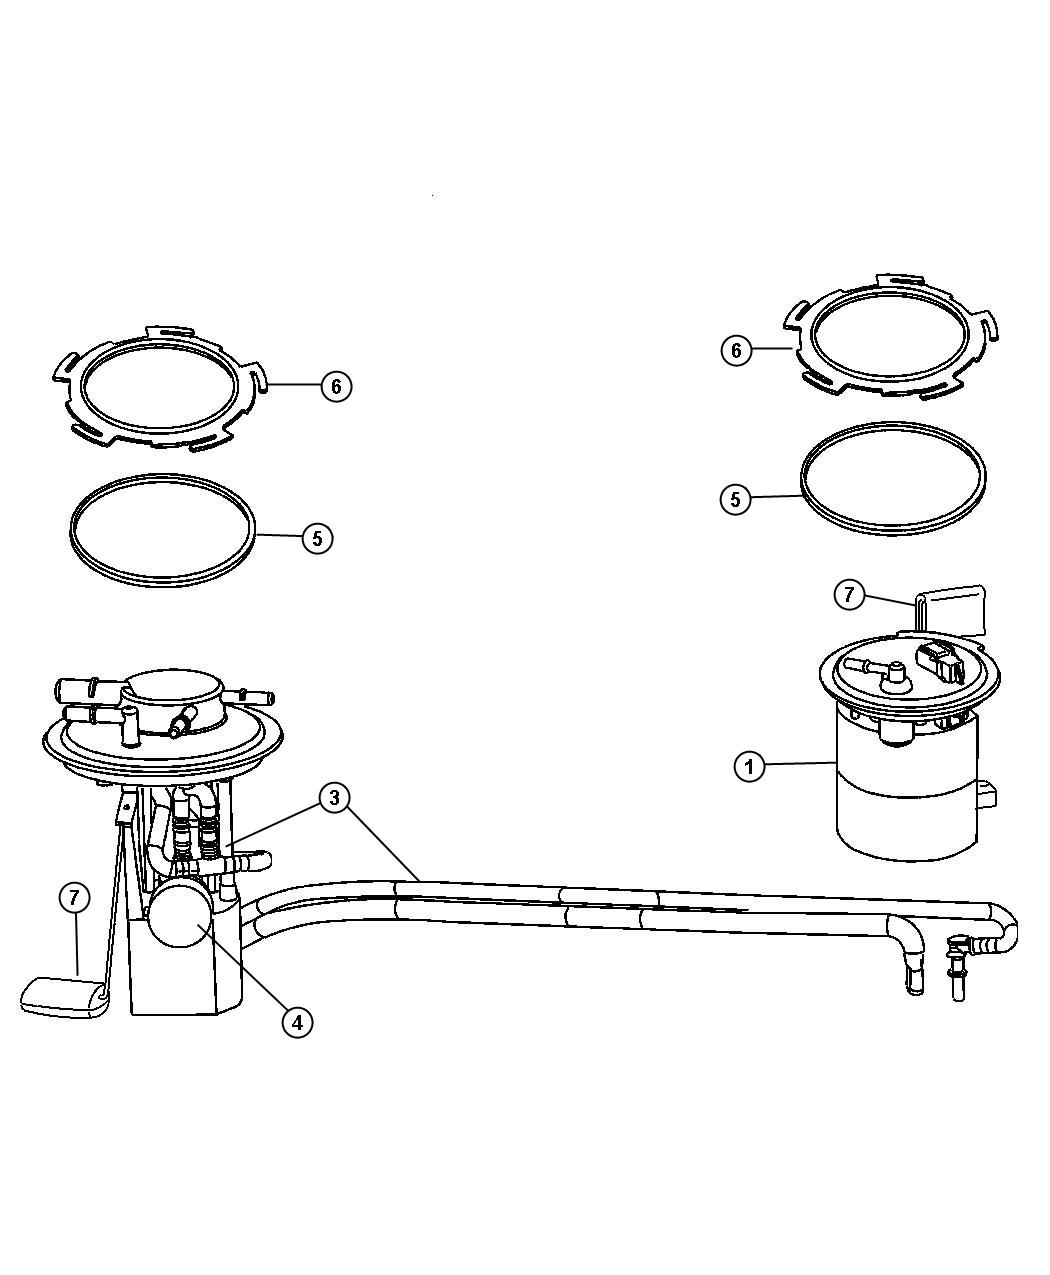 Chrysler Pacifica Flange kit. Primary fuel module